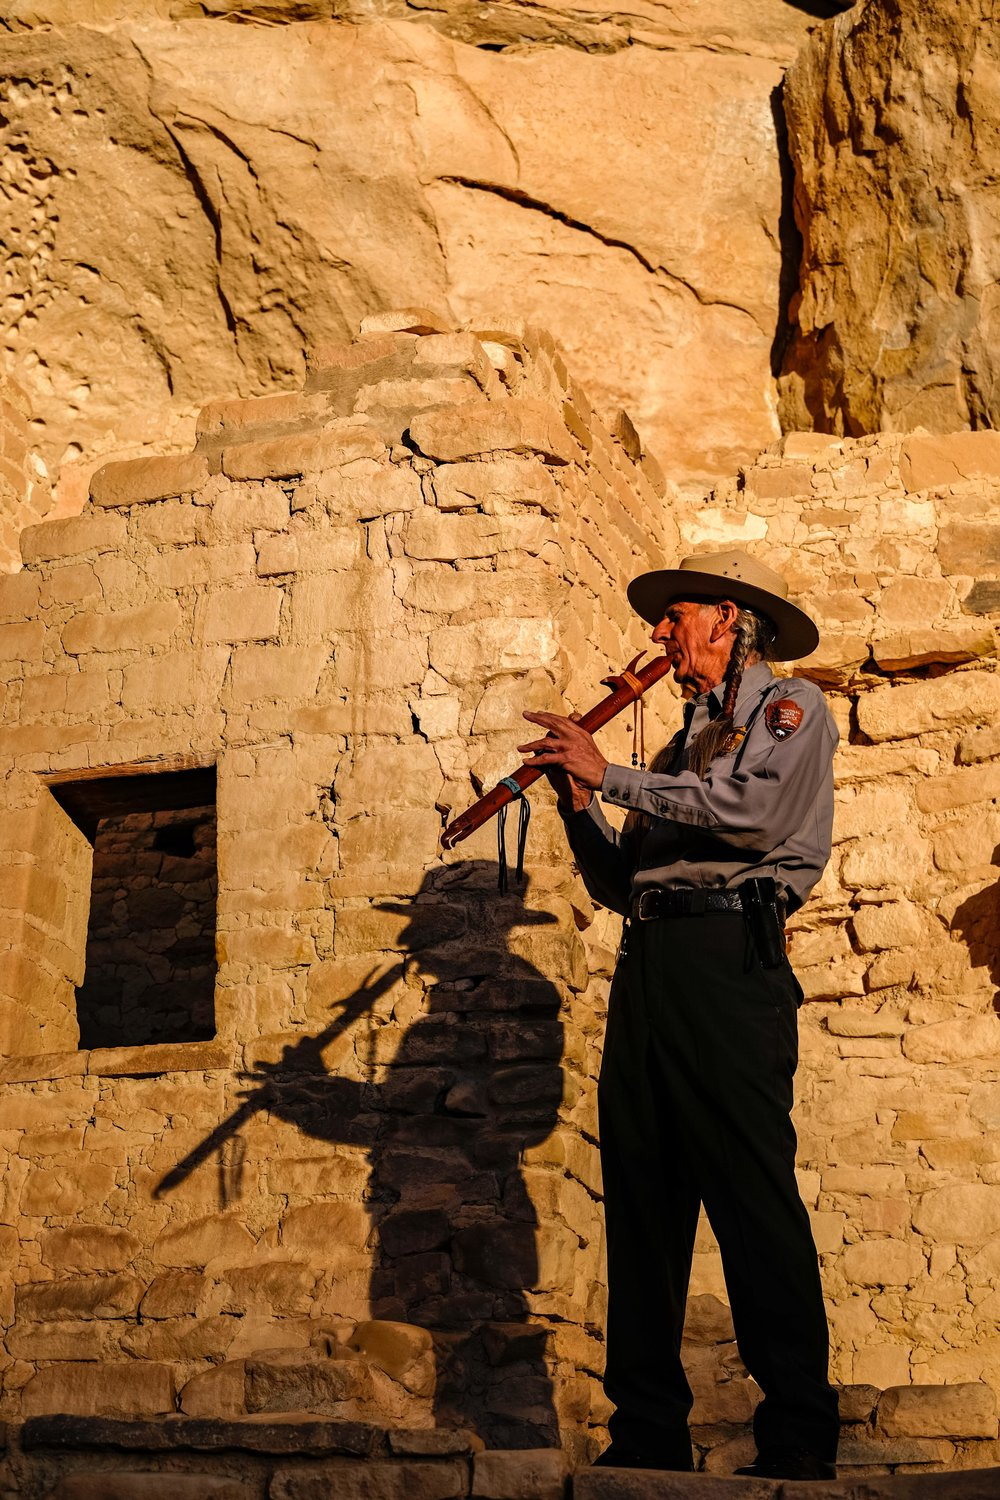 It is a haunting event to listen to the flute being played in this historic place.